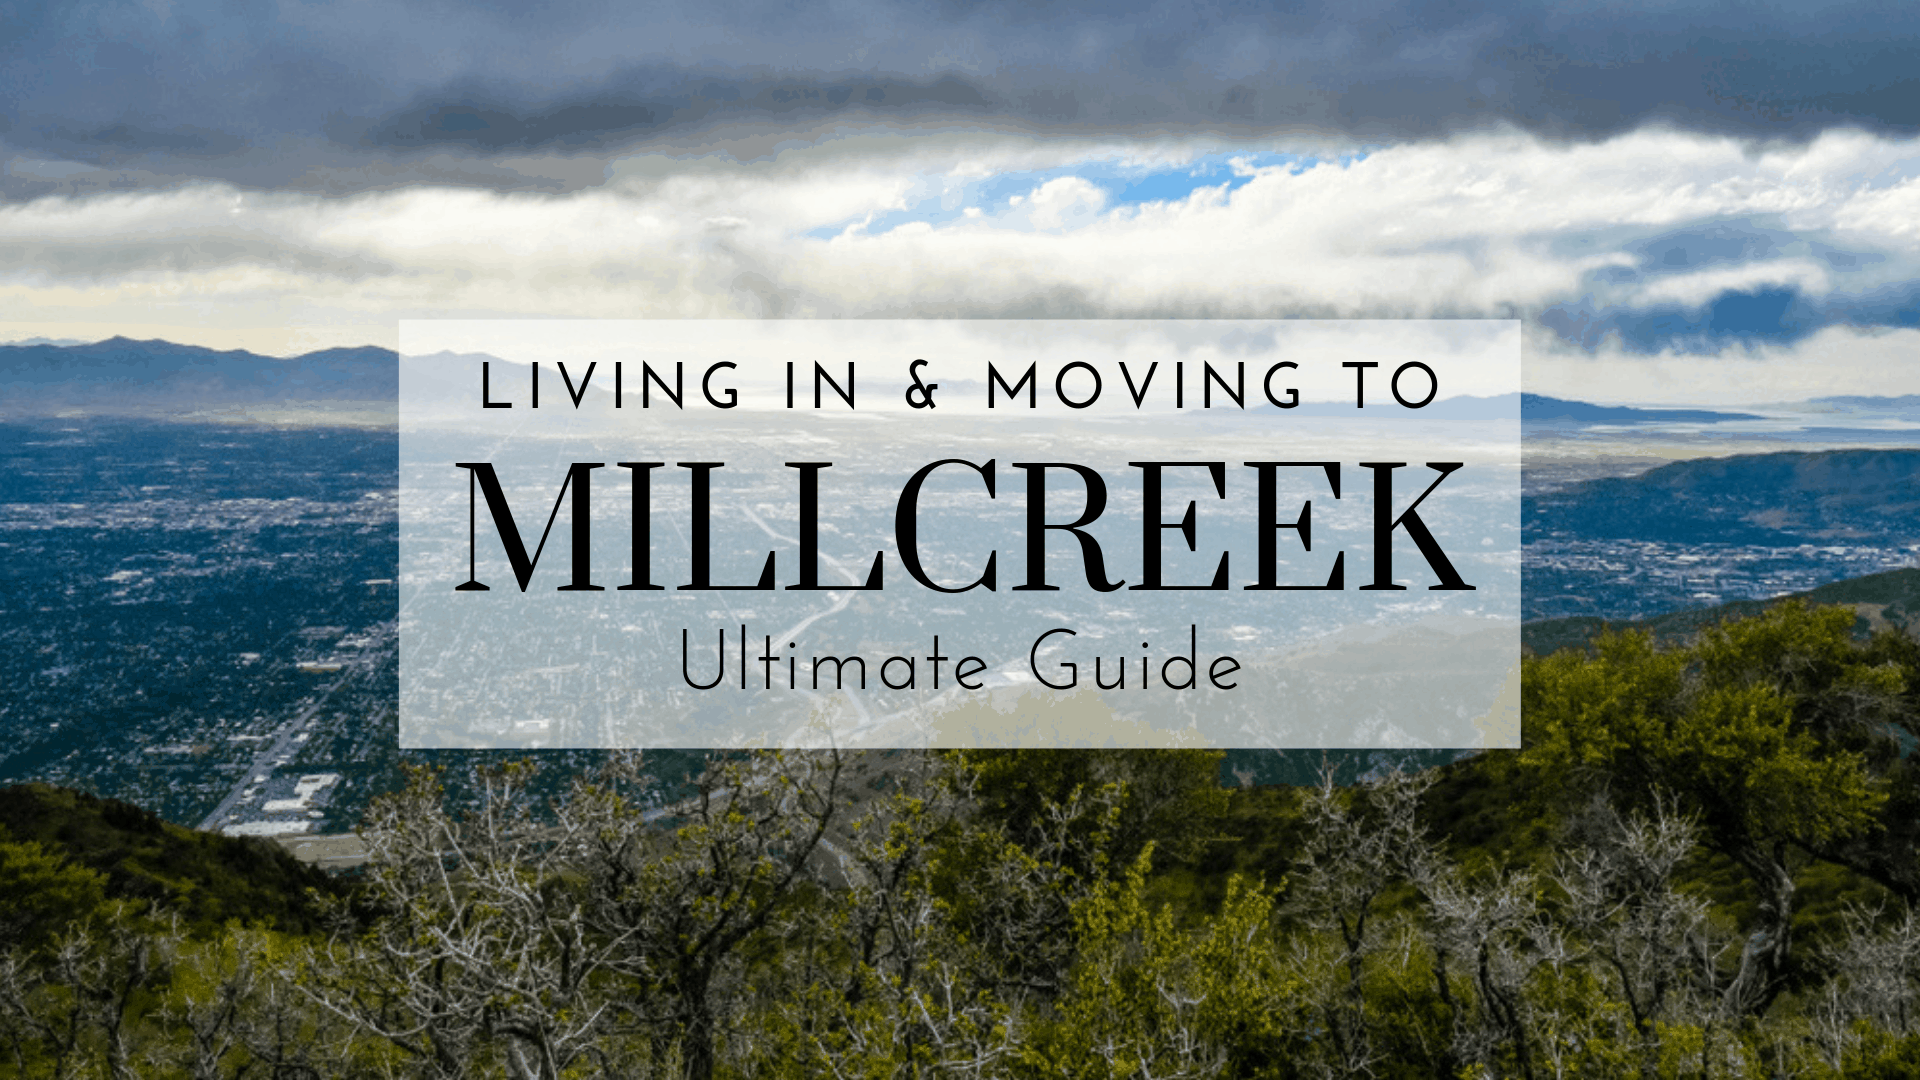 Living In & Moving To Millcreek, UT Ultimate Guide